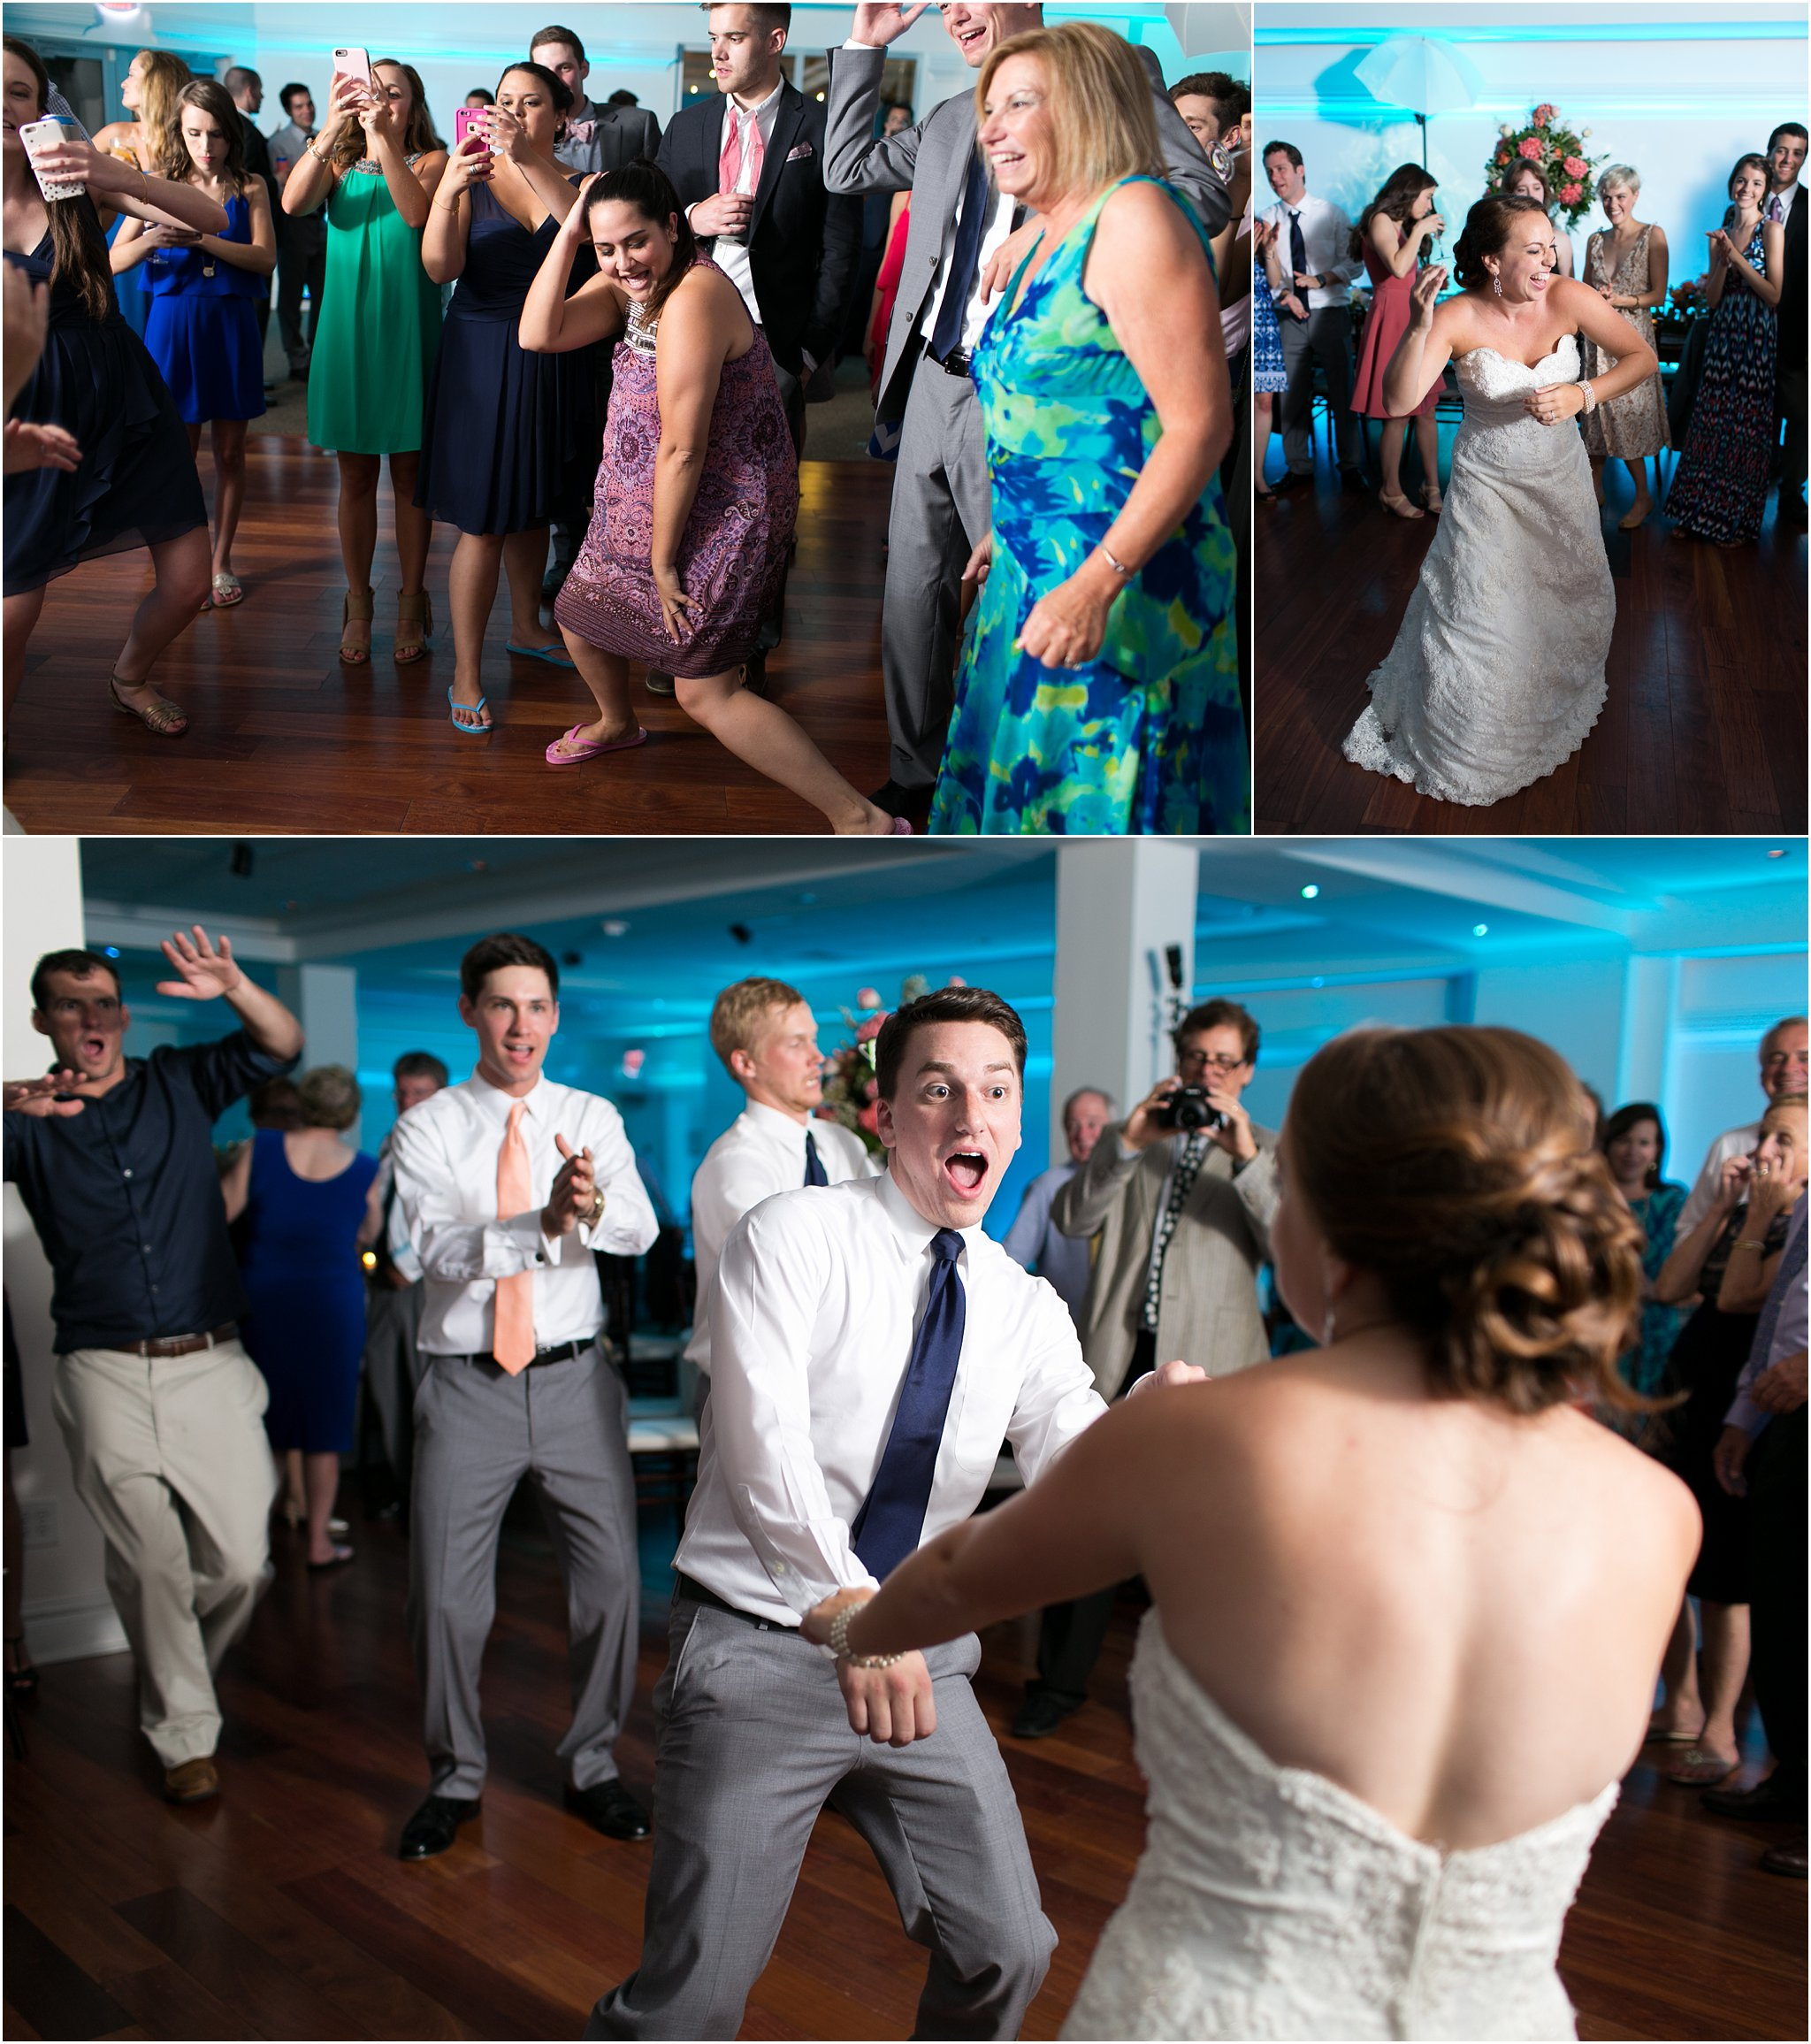 jessica_ryan_photography_wedding_photography_virginiabeach_virginia_candid_authentic_wedding_portraits_marina_shores_yacht_club_chesapeake_bay_1963